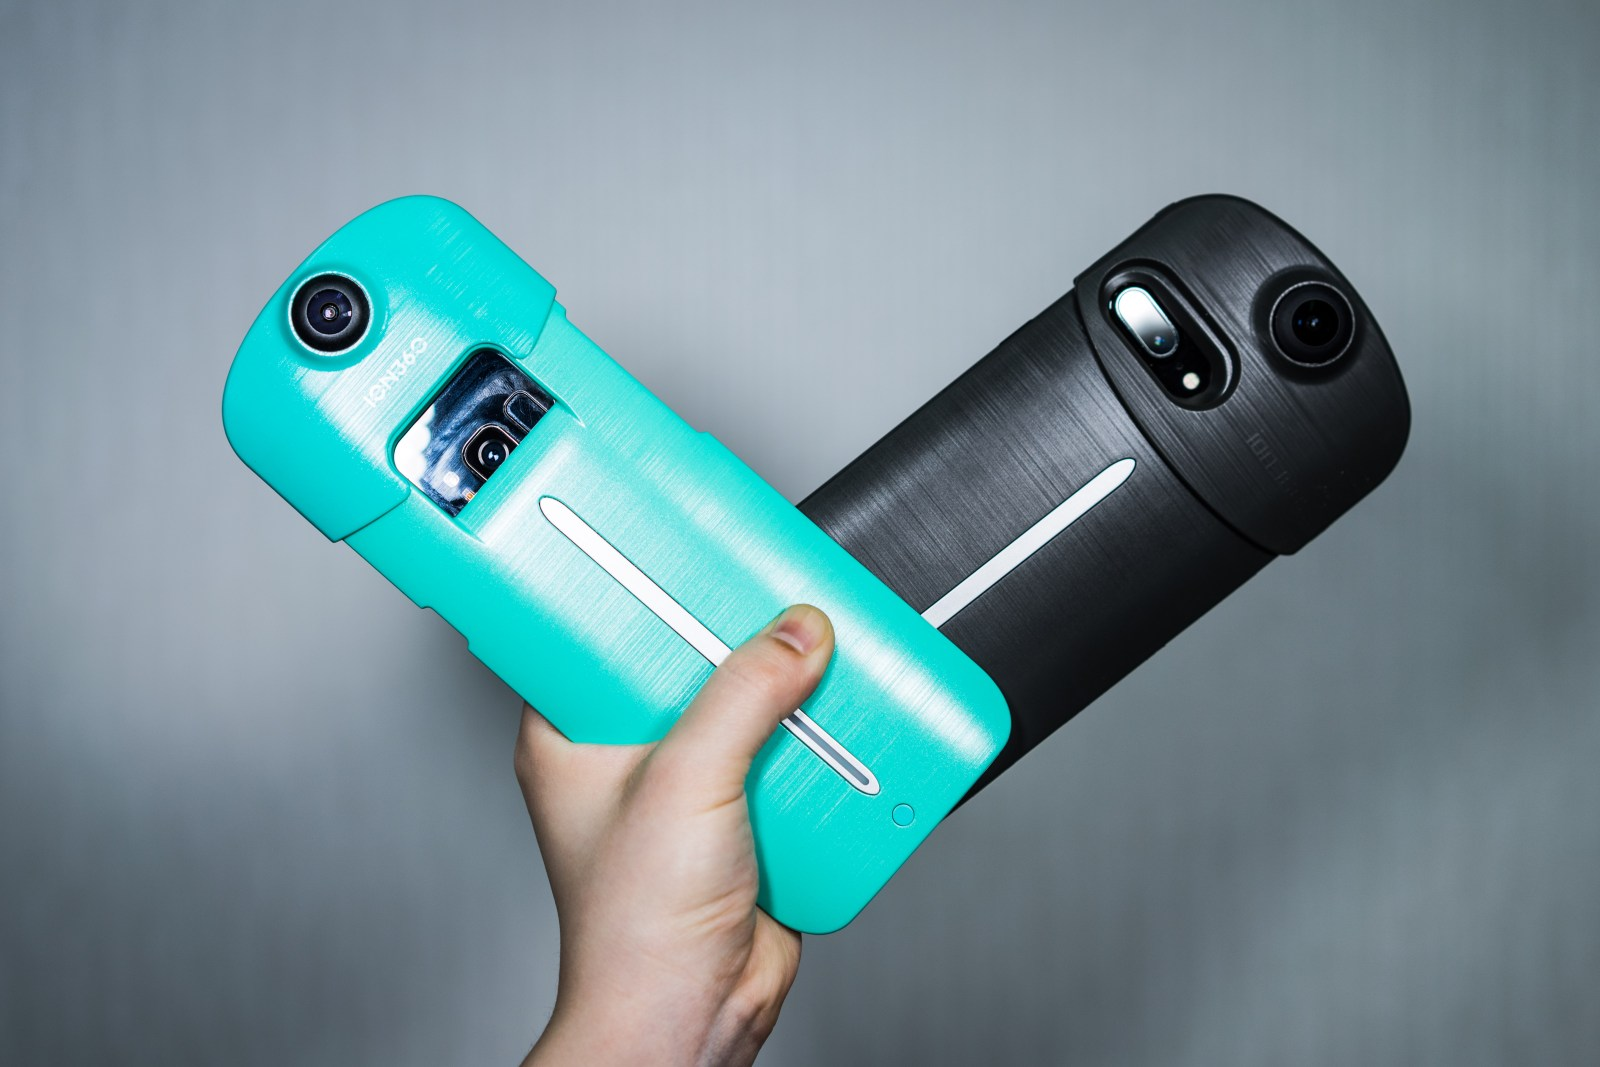 ION 360 – A Phone Case, Battery and 360 Camera All in One